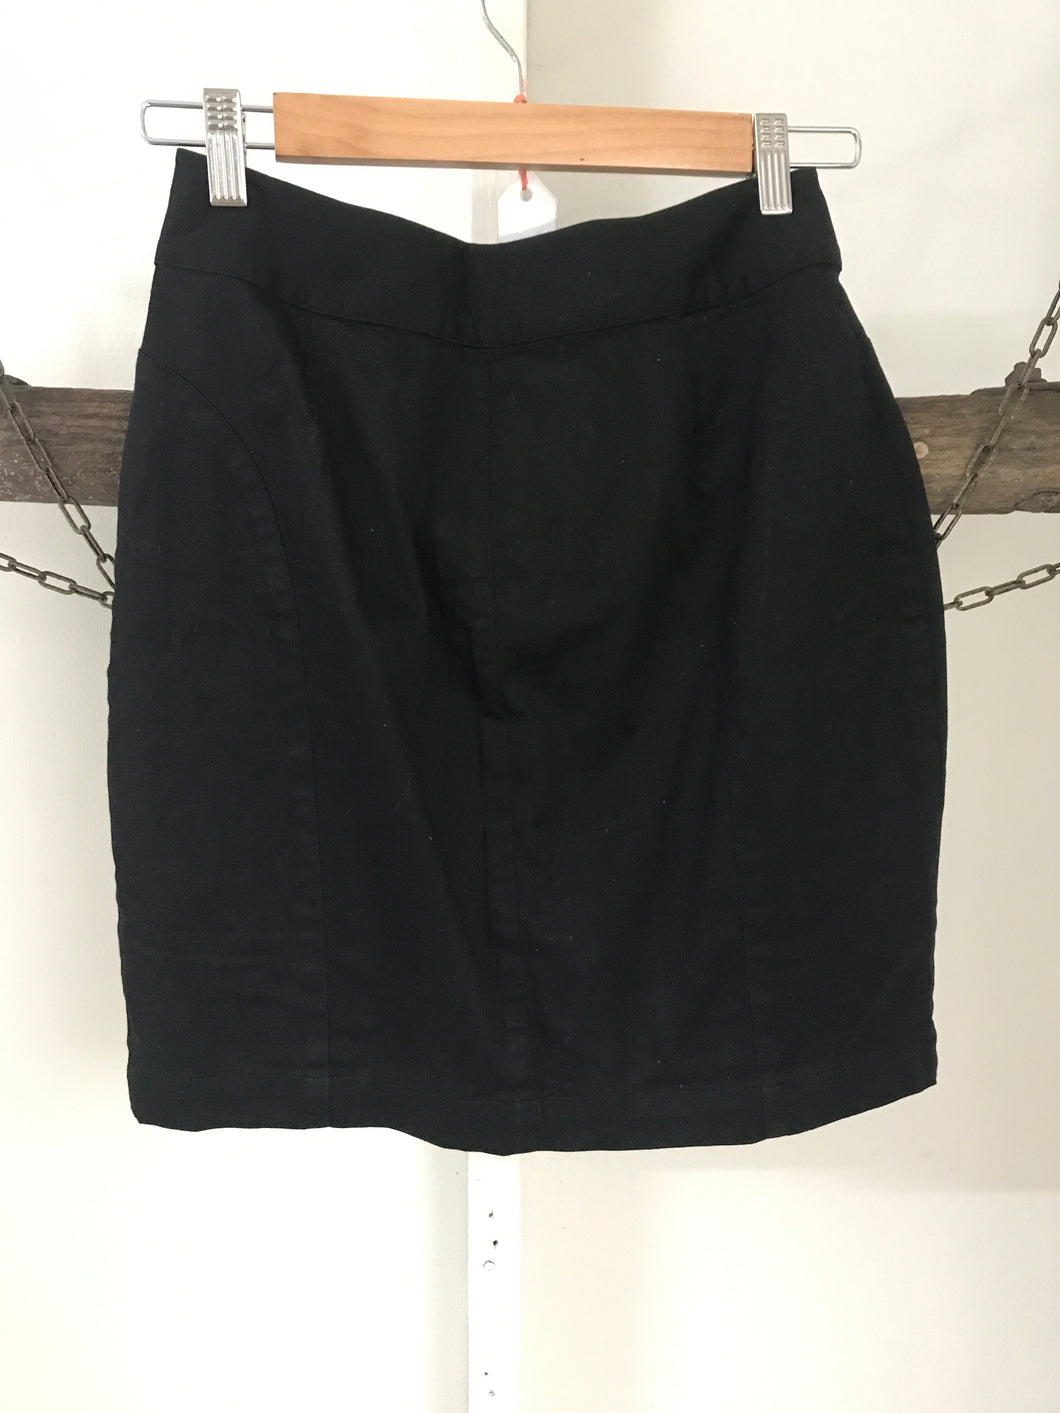 Blue Juice Black Zip Skirt Size 8